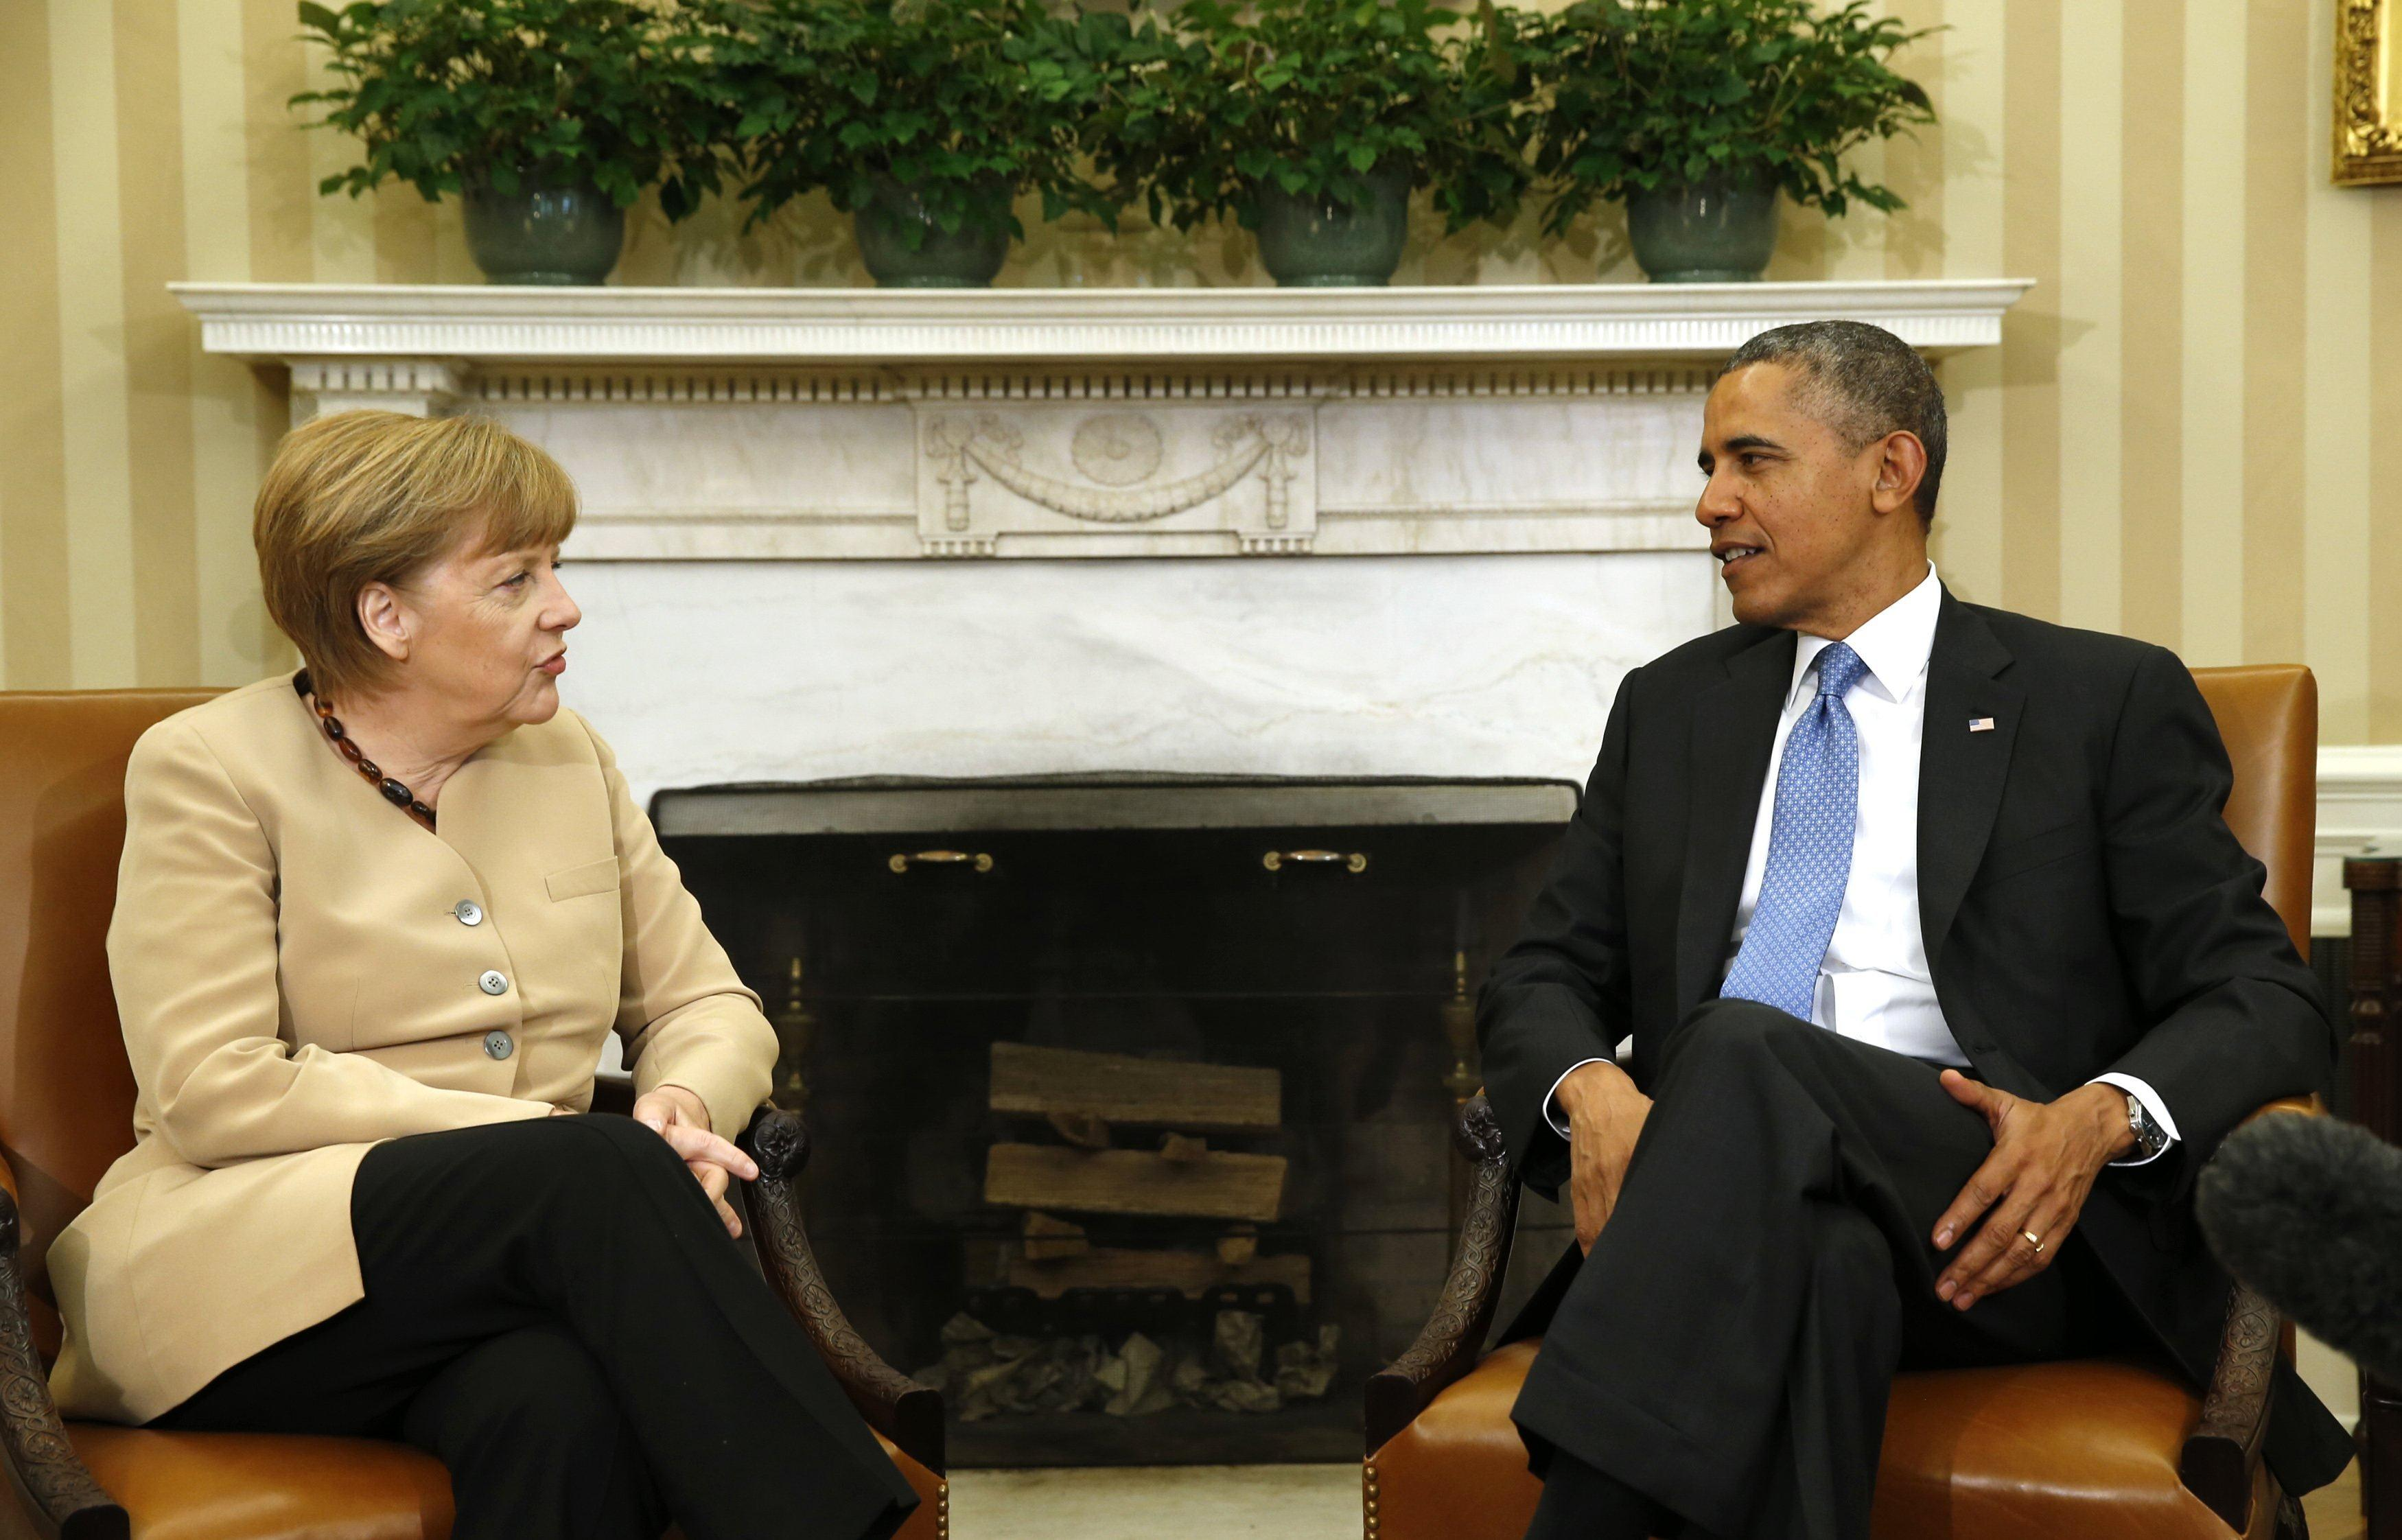 Image: U.S. President Obama meets with German Chancellor Merkel to discuss the Ukraine crisis at the White House